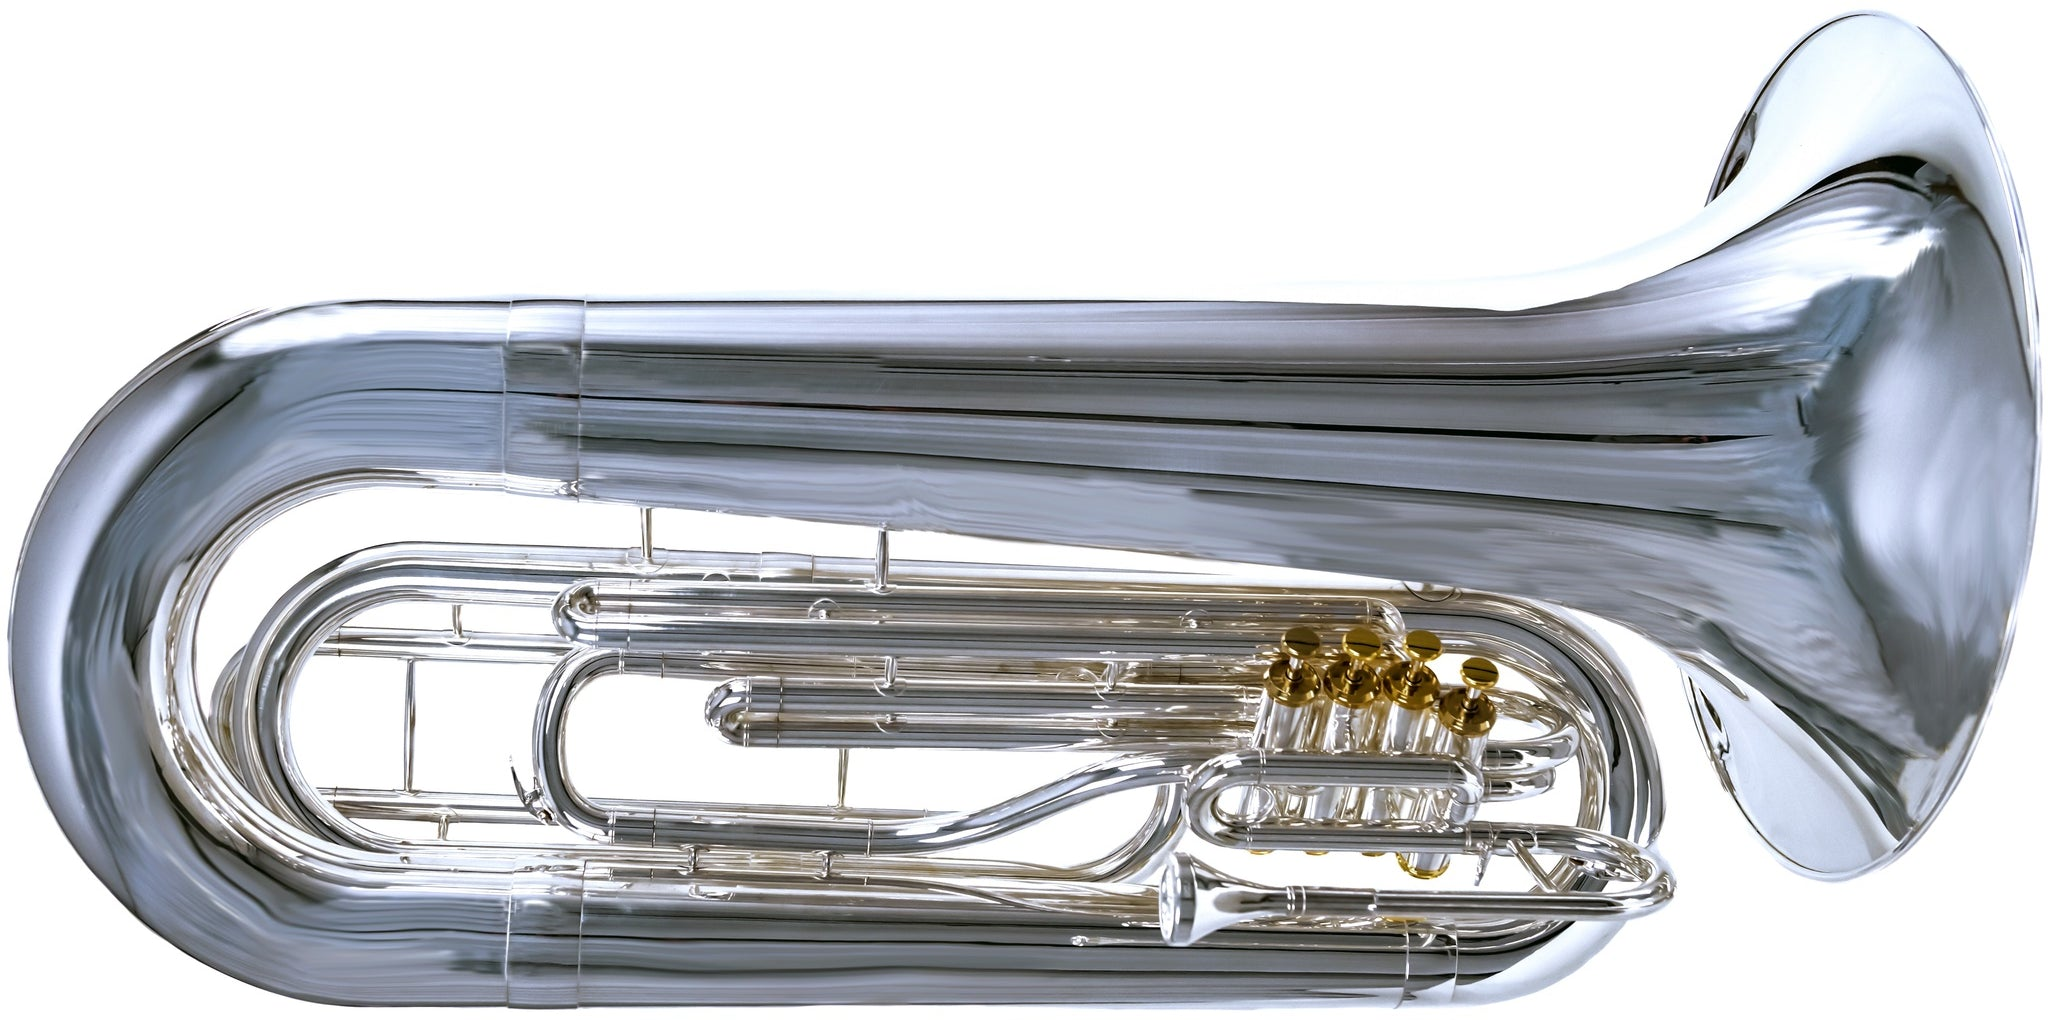 2019 System Blue Professional Marching Series Tuba (SB50, Silver)